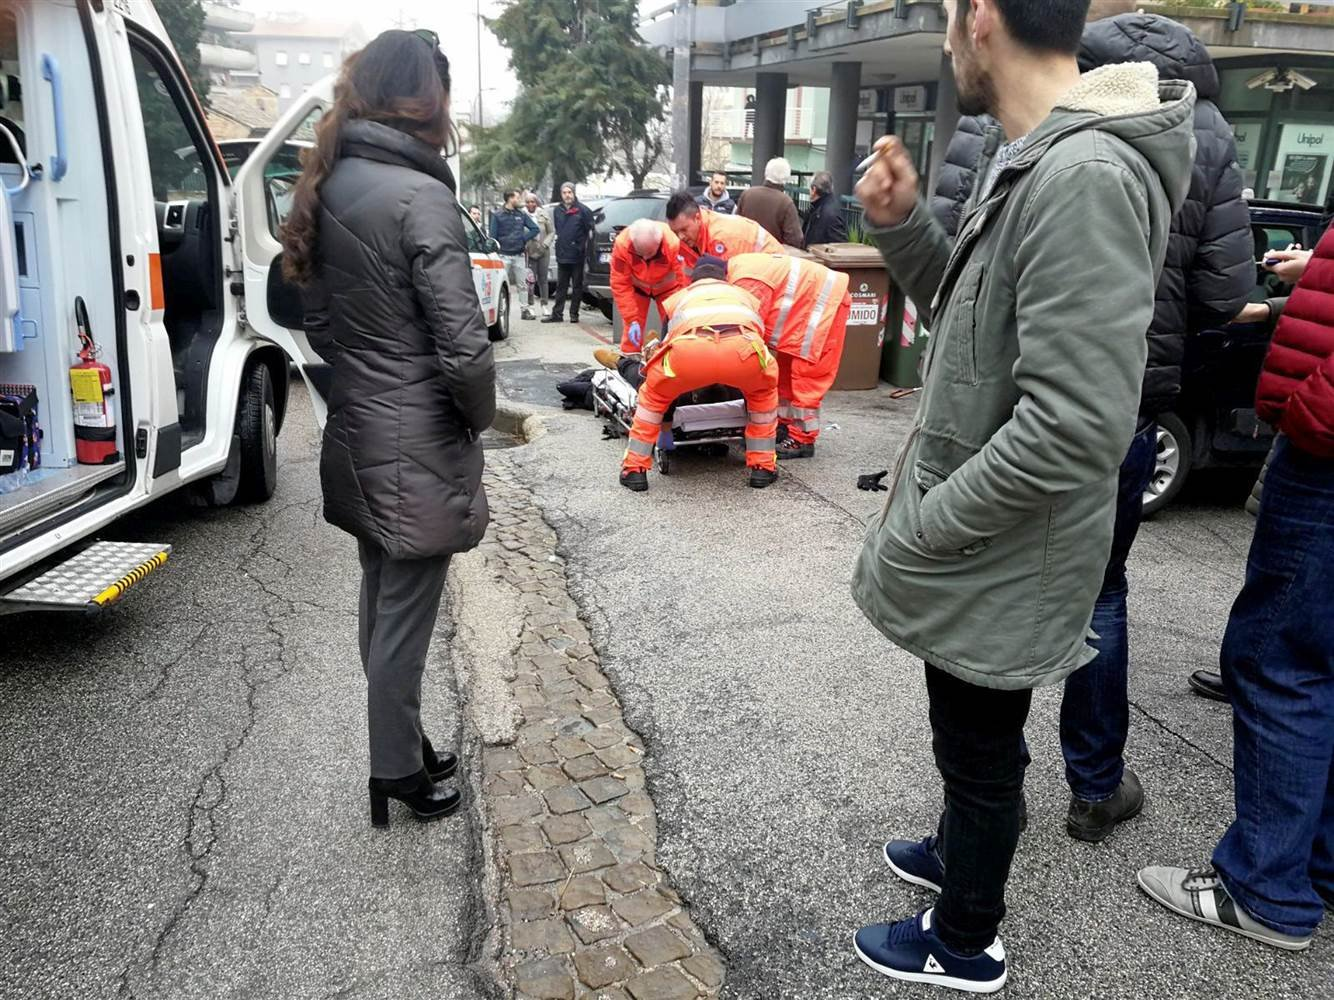 Healthcare personnel take care of an injured person after being shot by gun fire from a vehicle, in Macerata, Italy, on Feb. 3, 2018. photo NBC News.